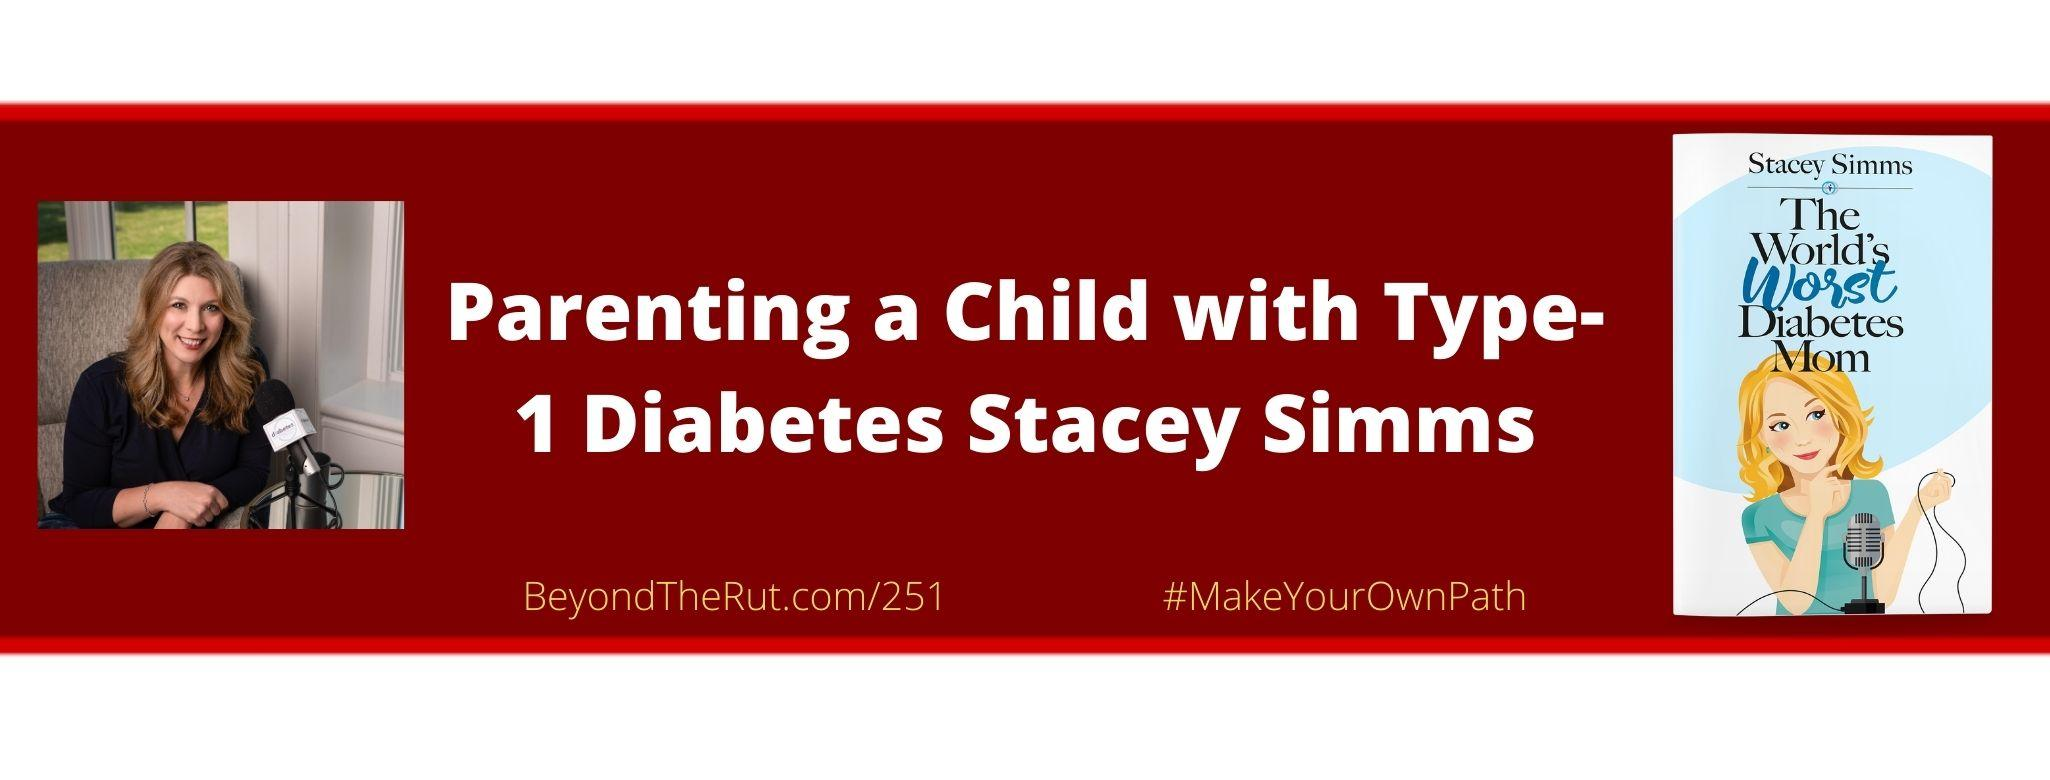 parenting a child with type-1 diabetes